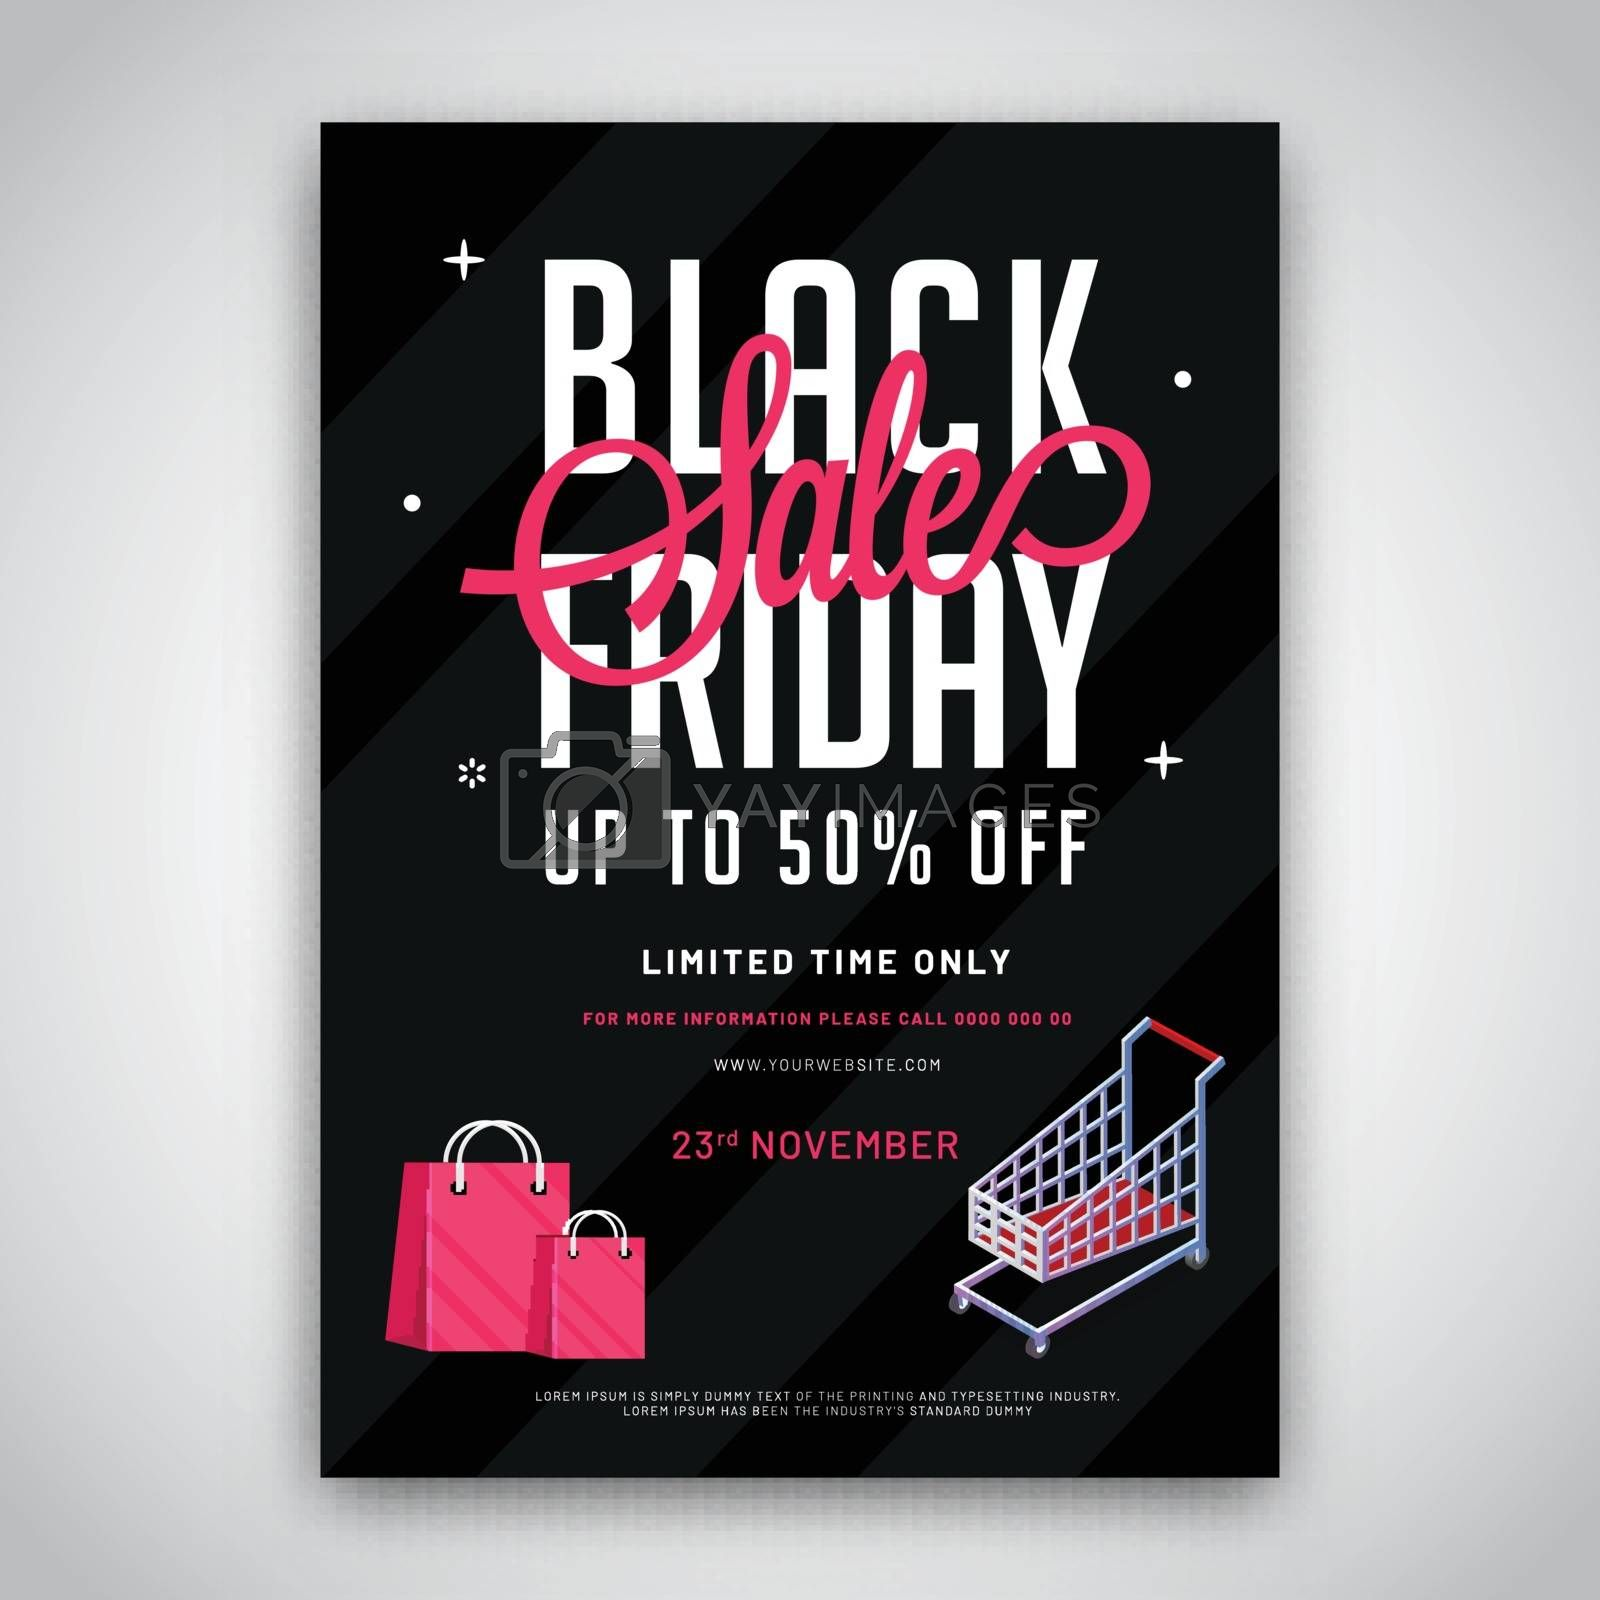 Black Friday Sale with 50% discount offer and shopping equipments on background. Advertising template or flyer design.